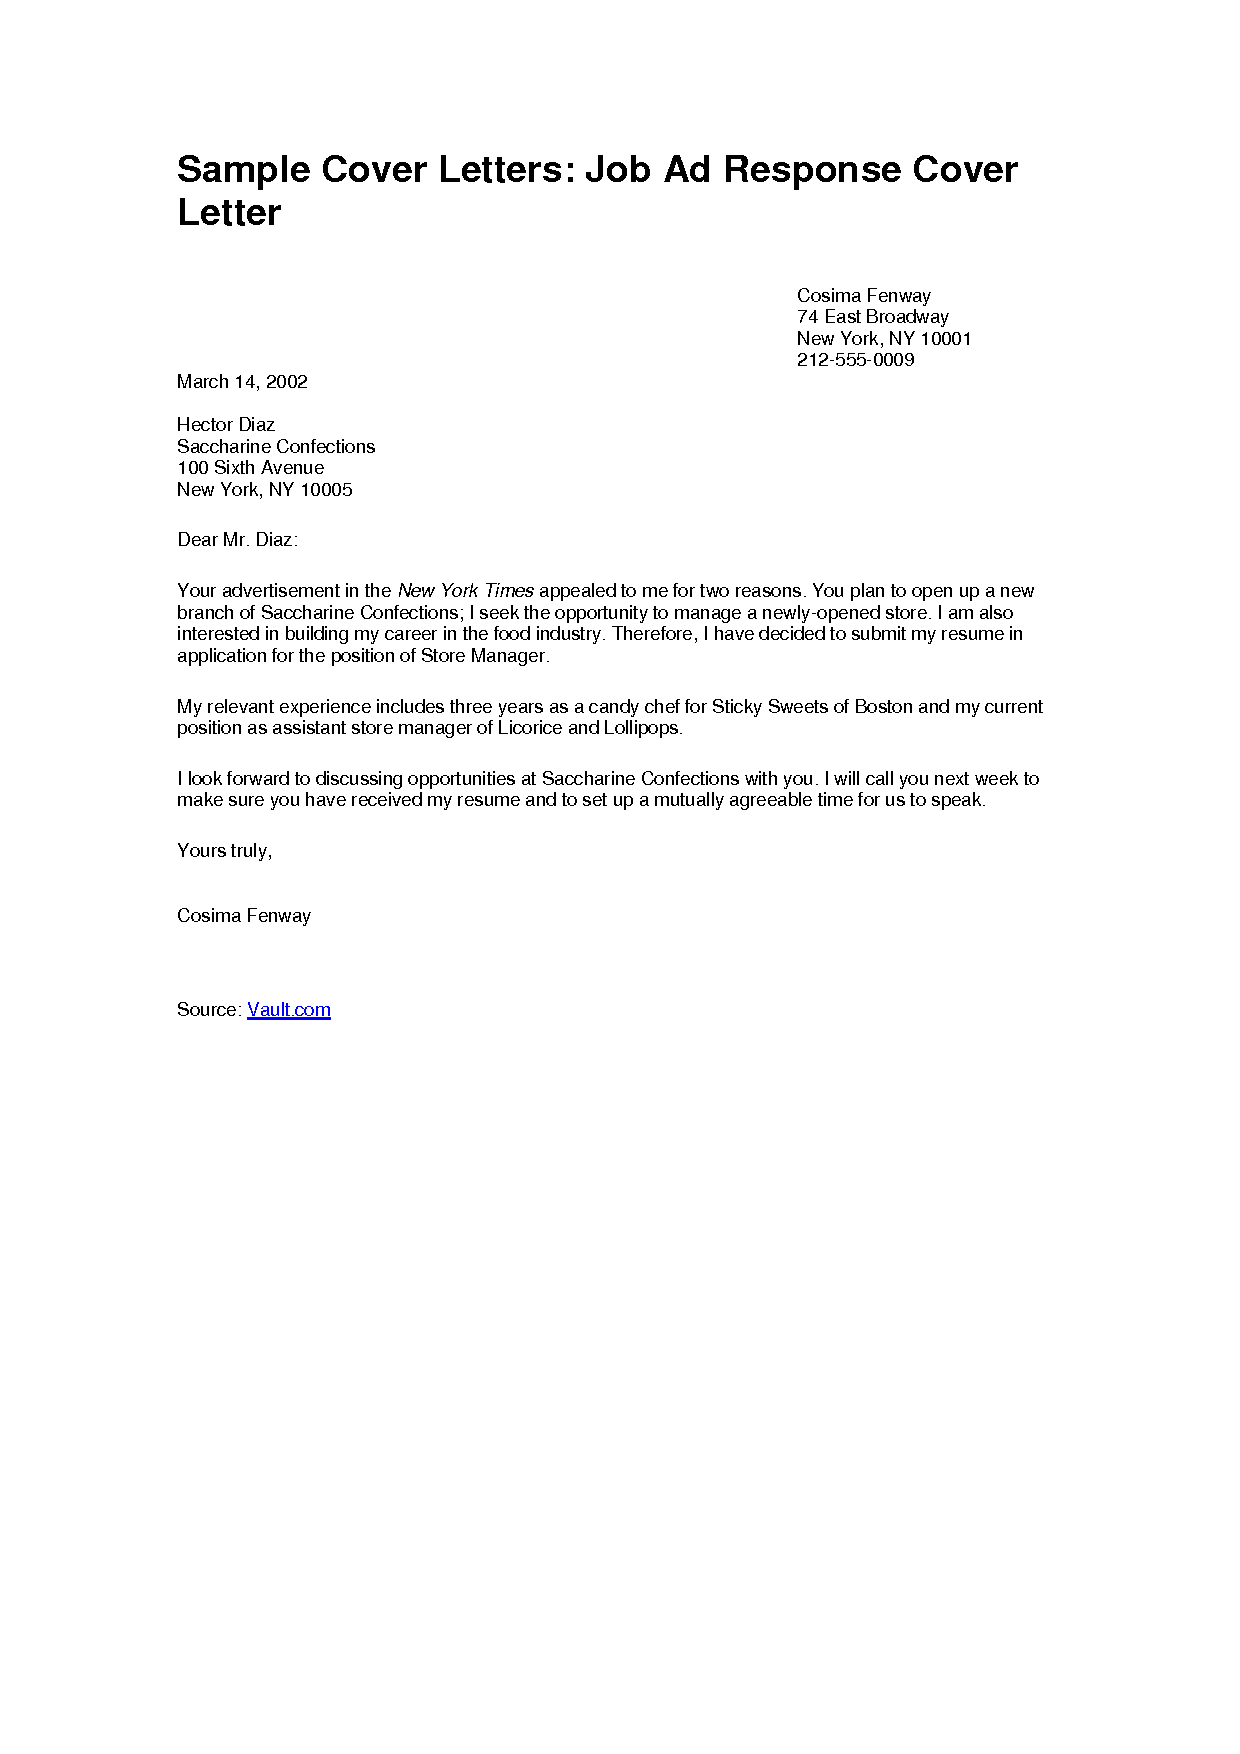 cover letter for potential job opening - sample cover letter for applying a job